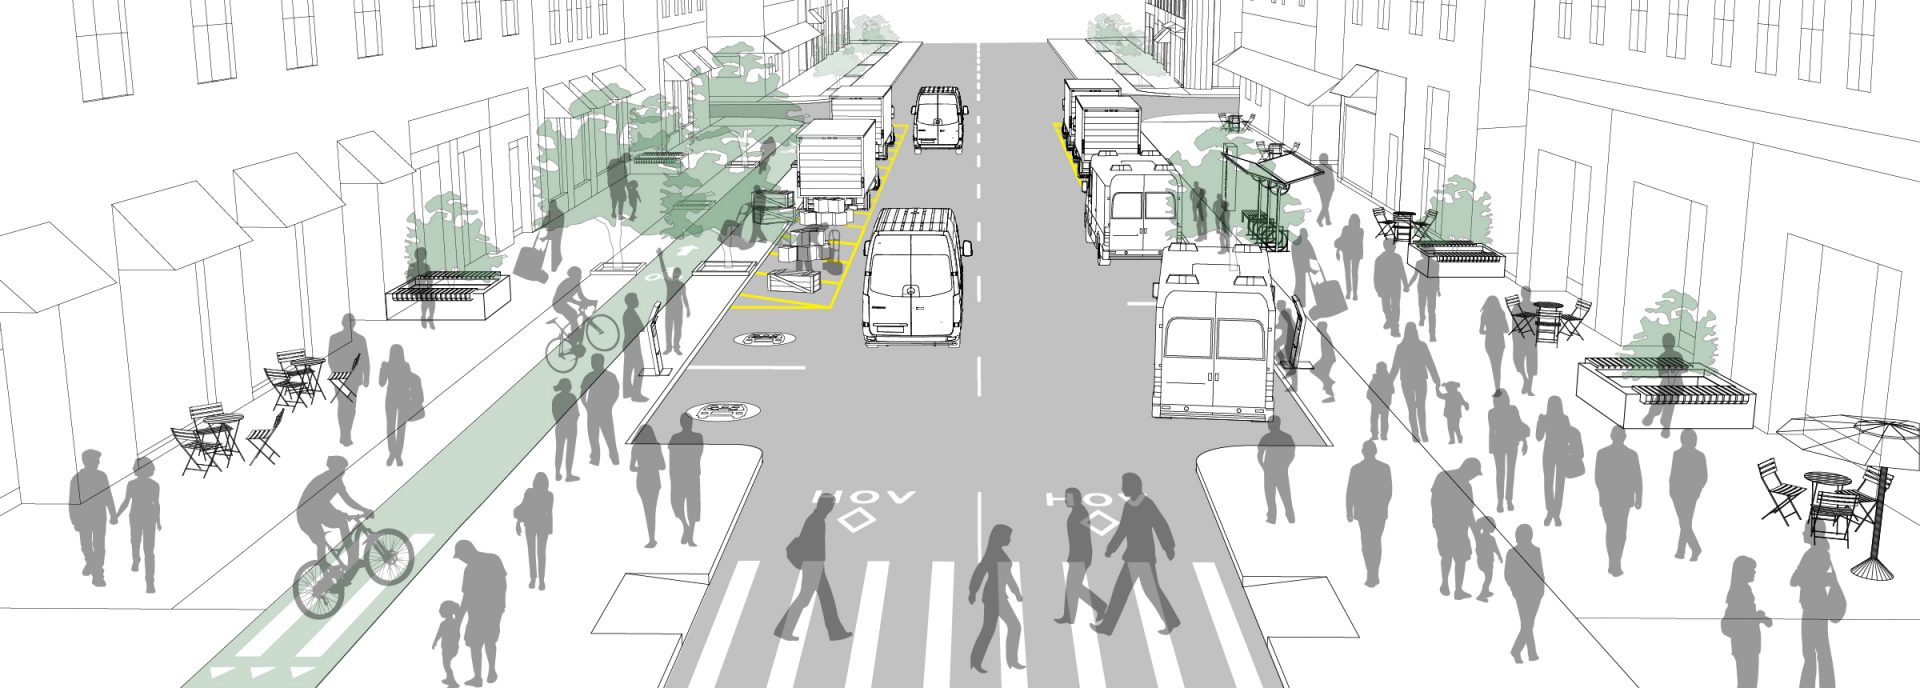 Street Plans to Host Public Workshop in Asheville to Plan Tactical Urbanism Project